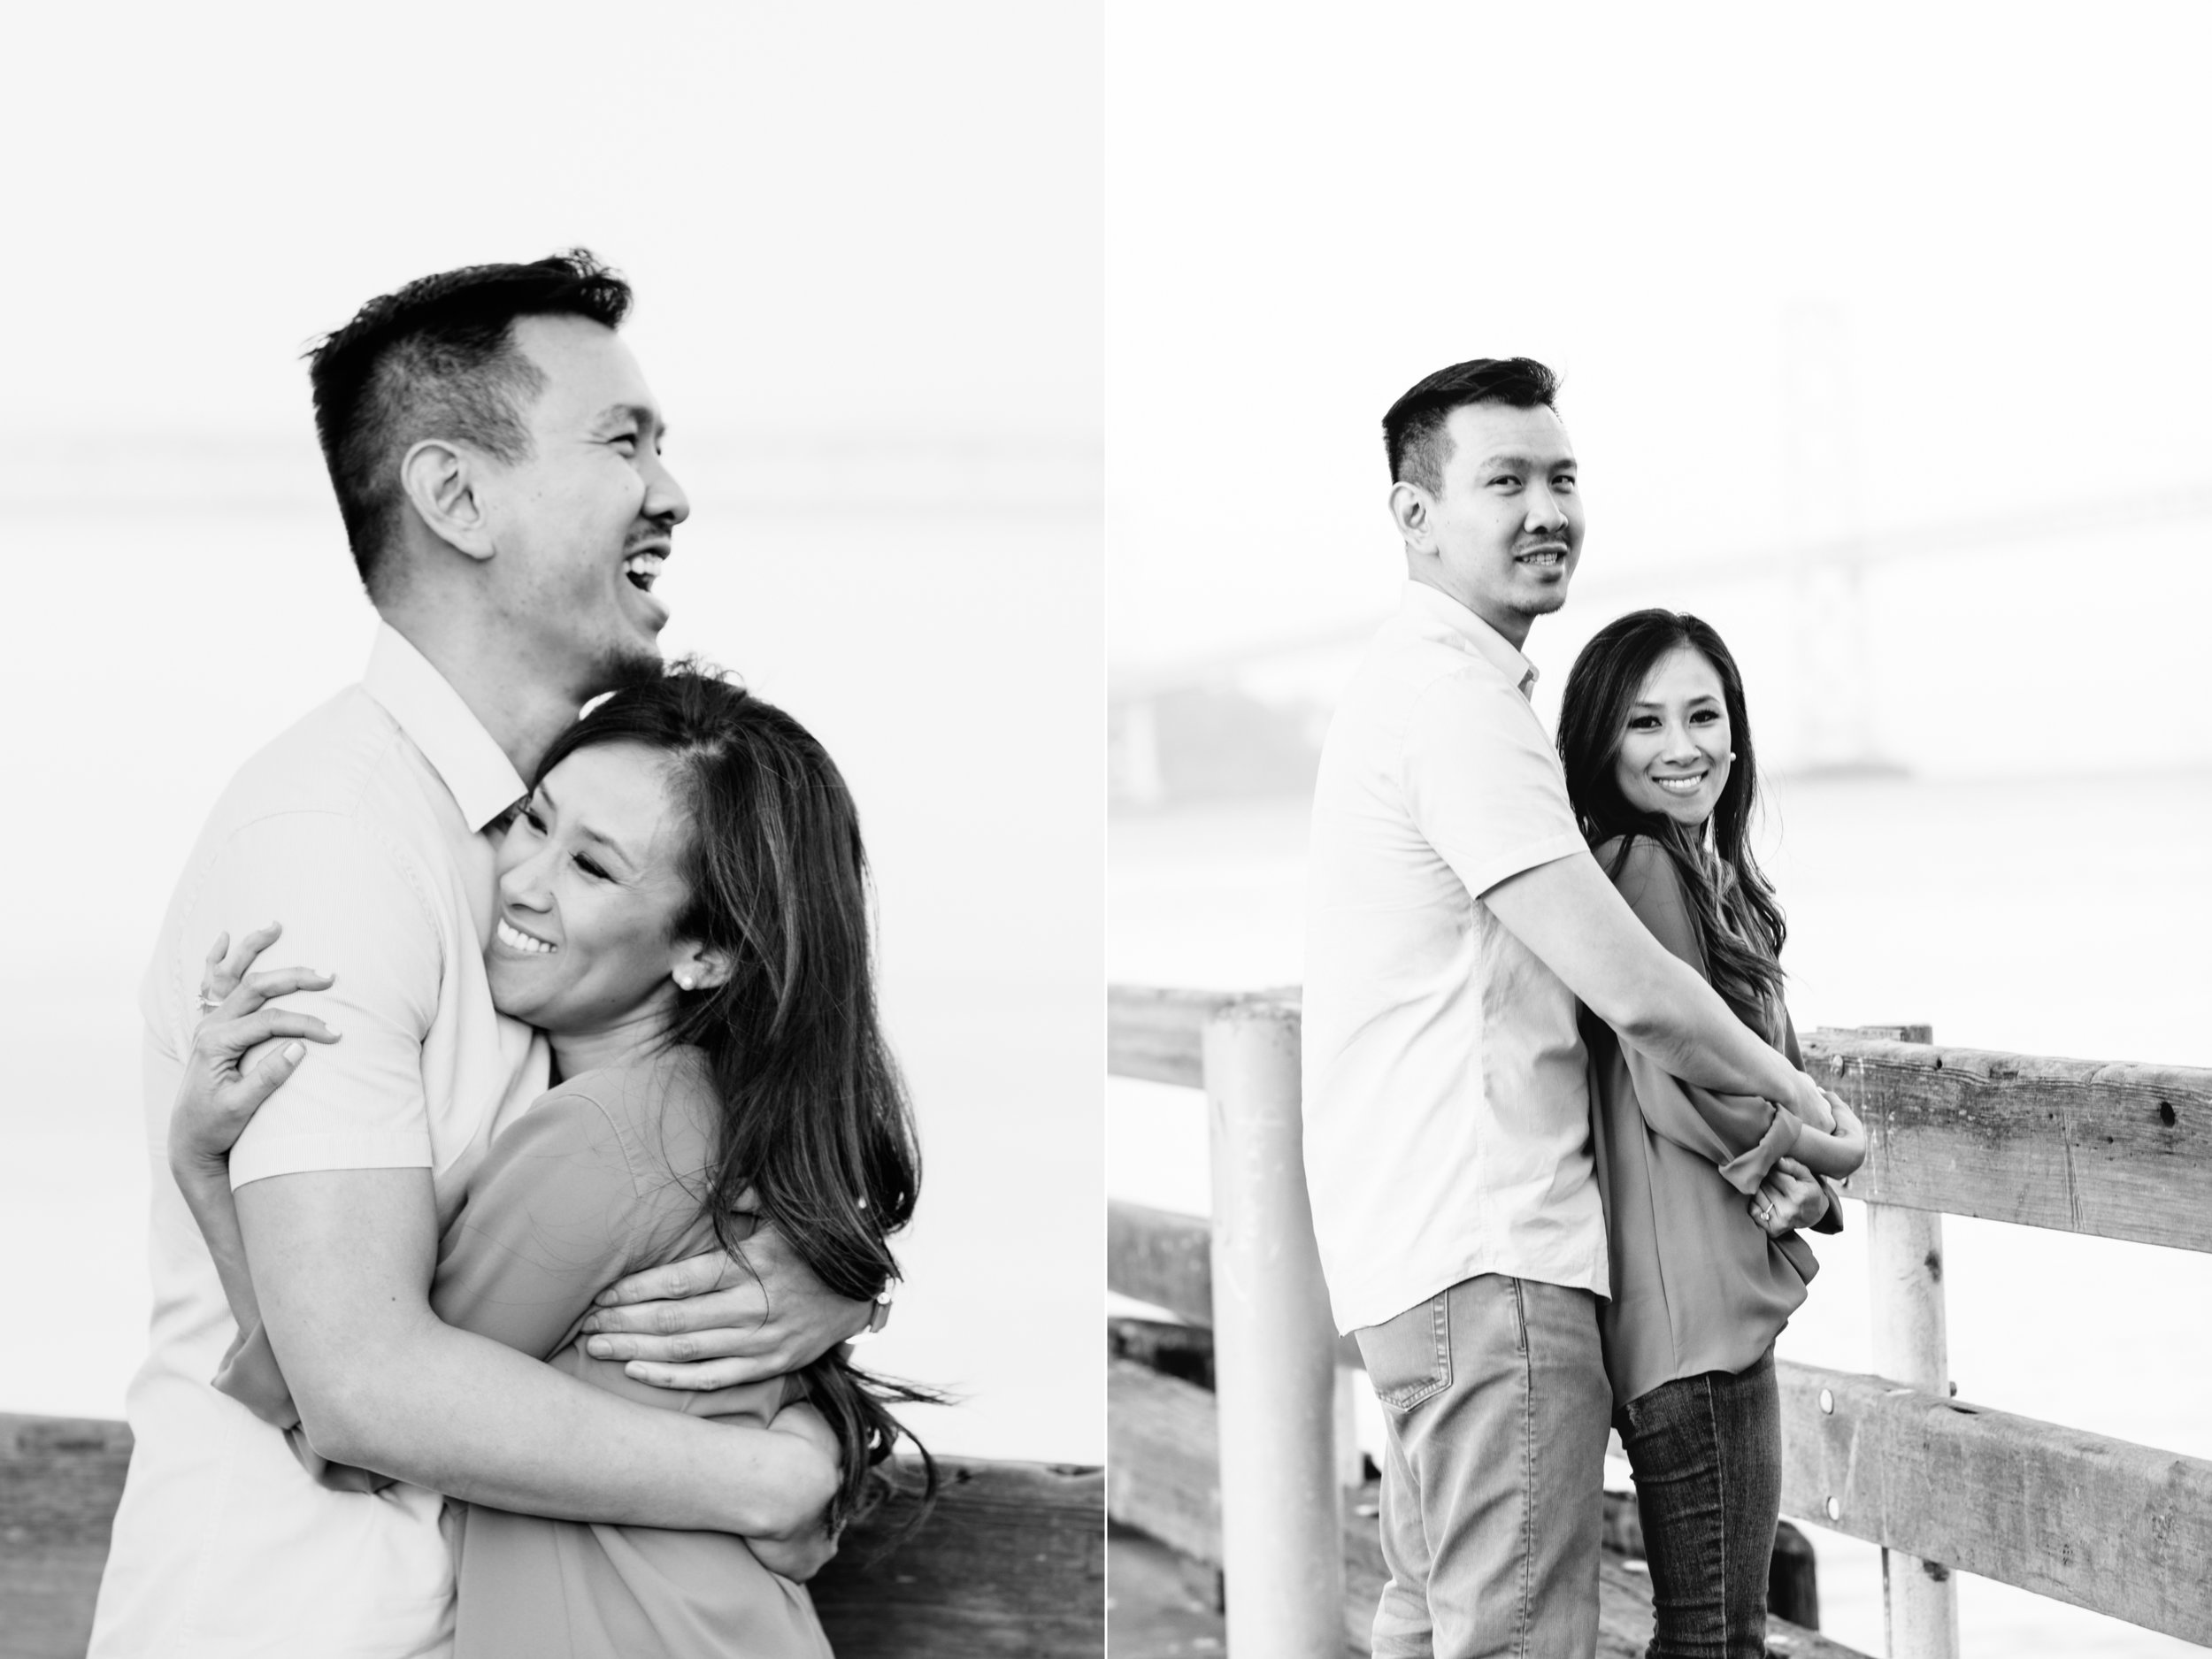 jennifer-jayn-photography-san-francisco-engagement-session-15.jpg